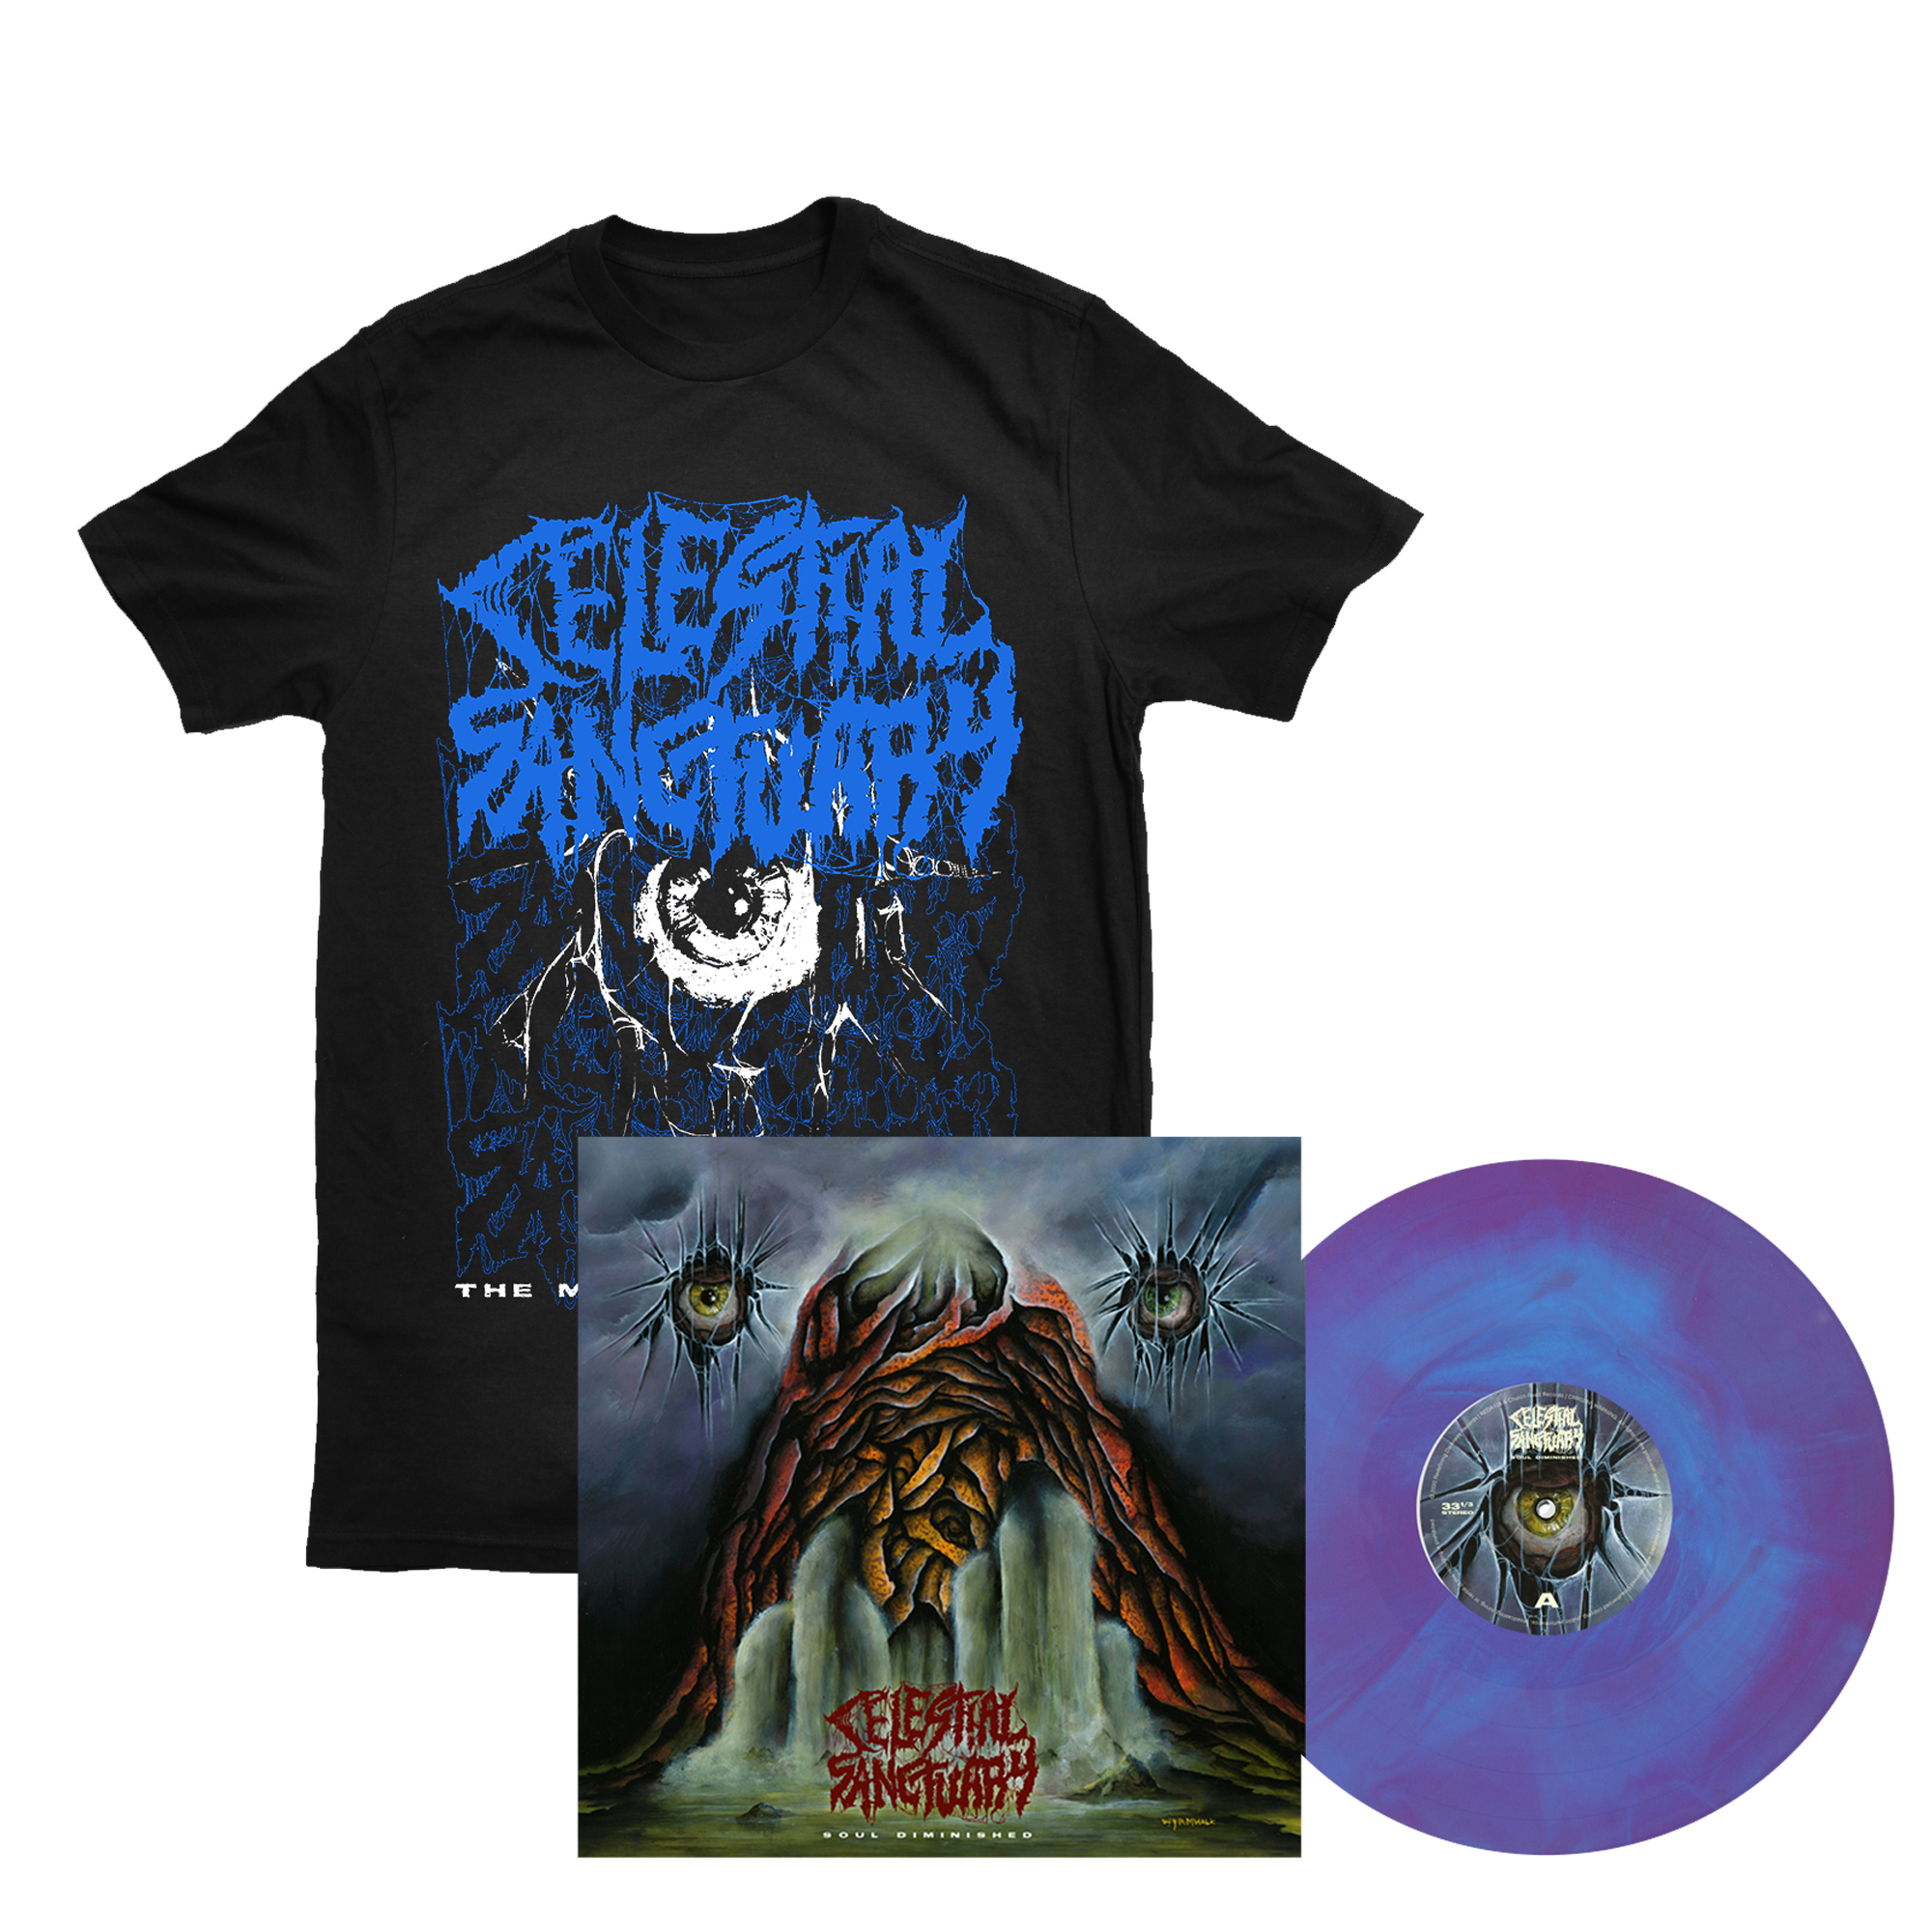 Celestial Sanctuary - Soul Diminished LP + shirt